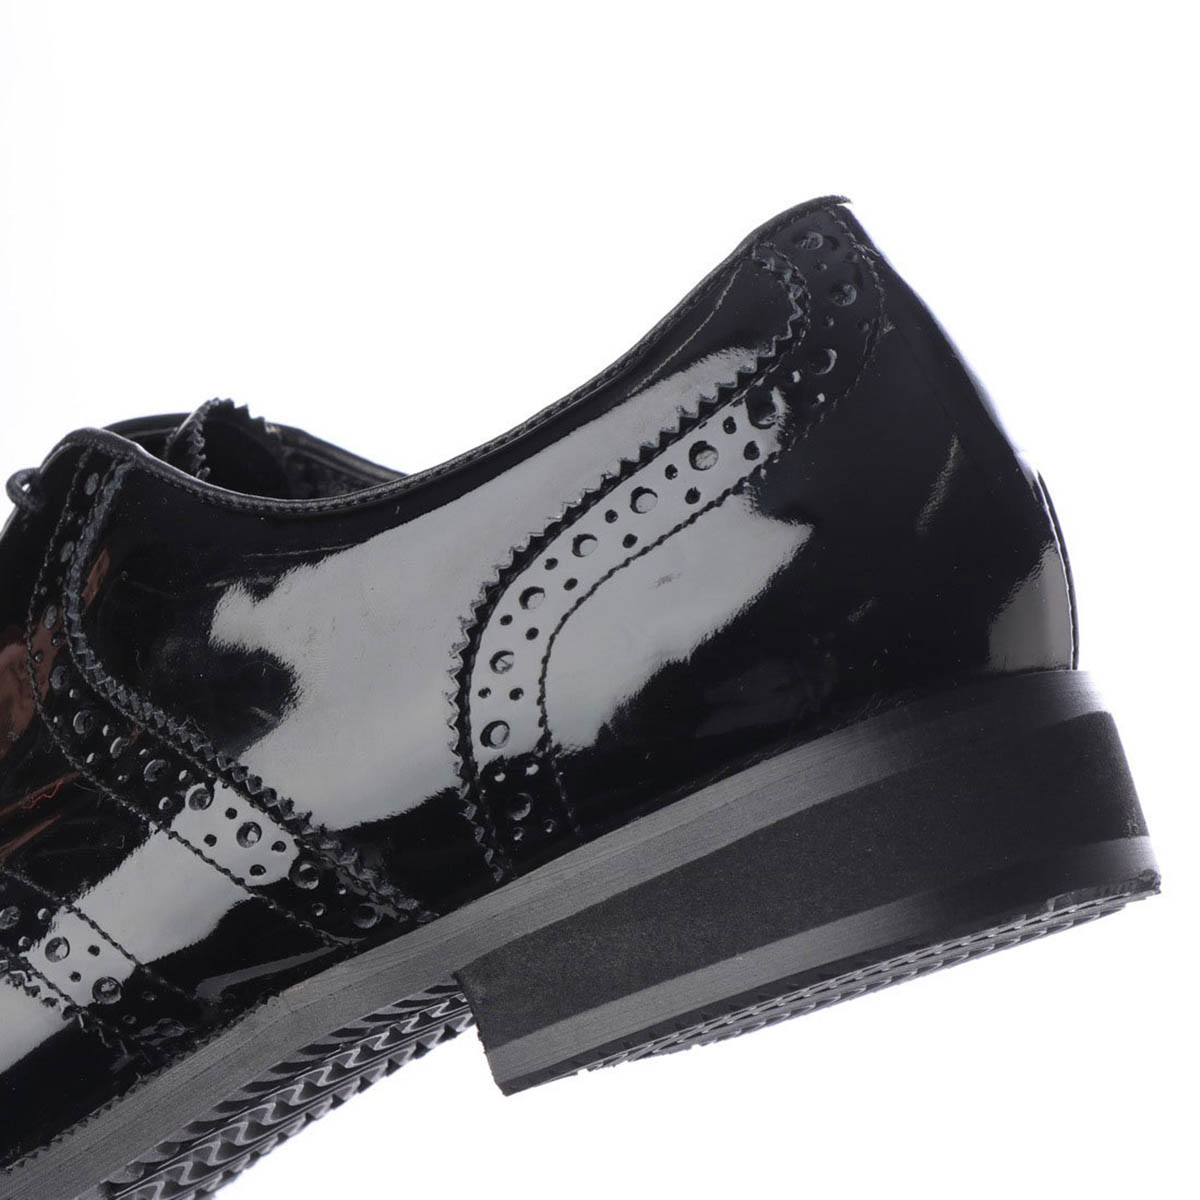 【MEN】 JADE JADE Harajuku model JD4003 BLACK-ENAMEL 25